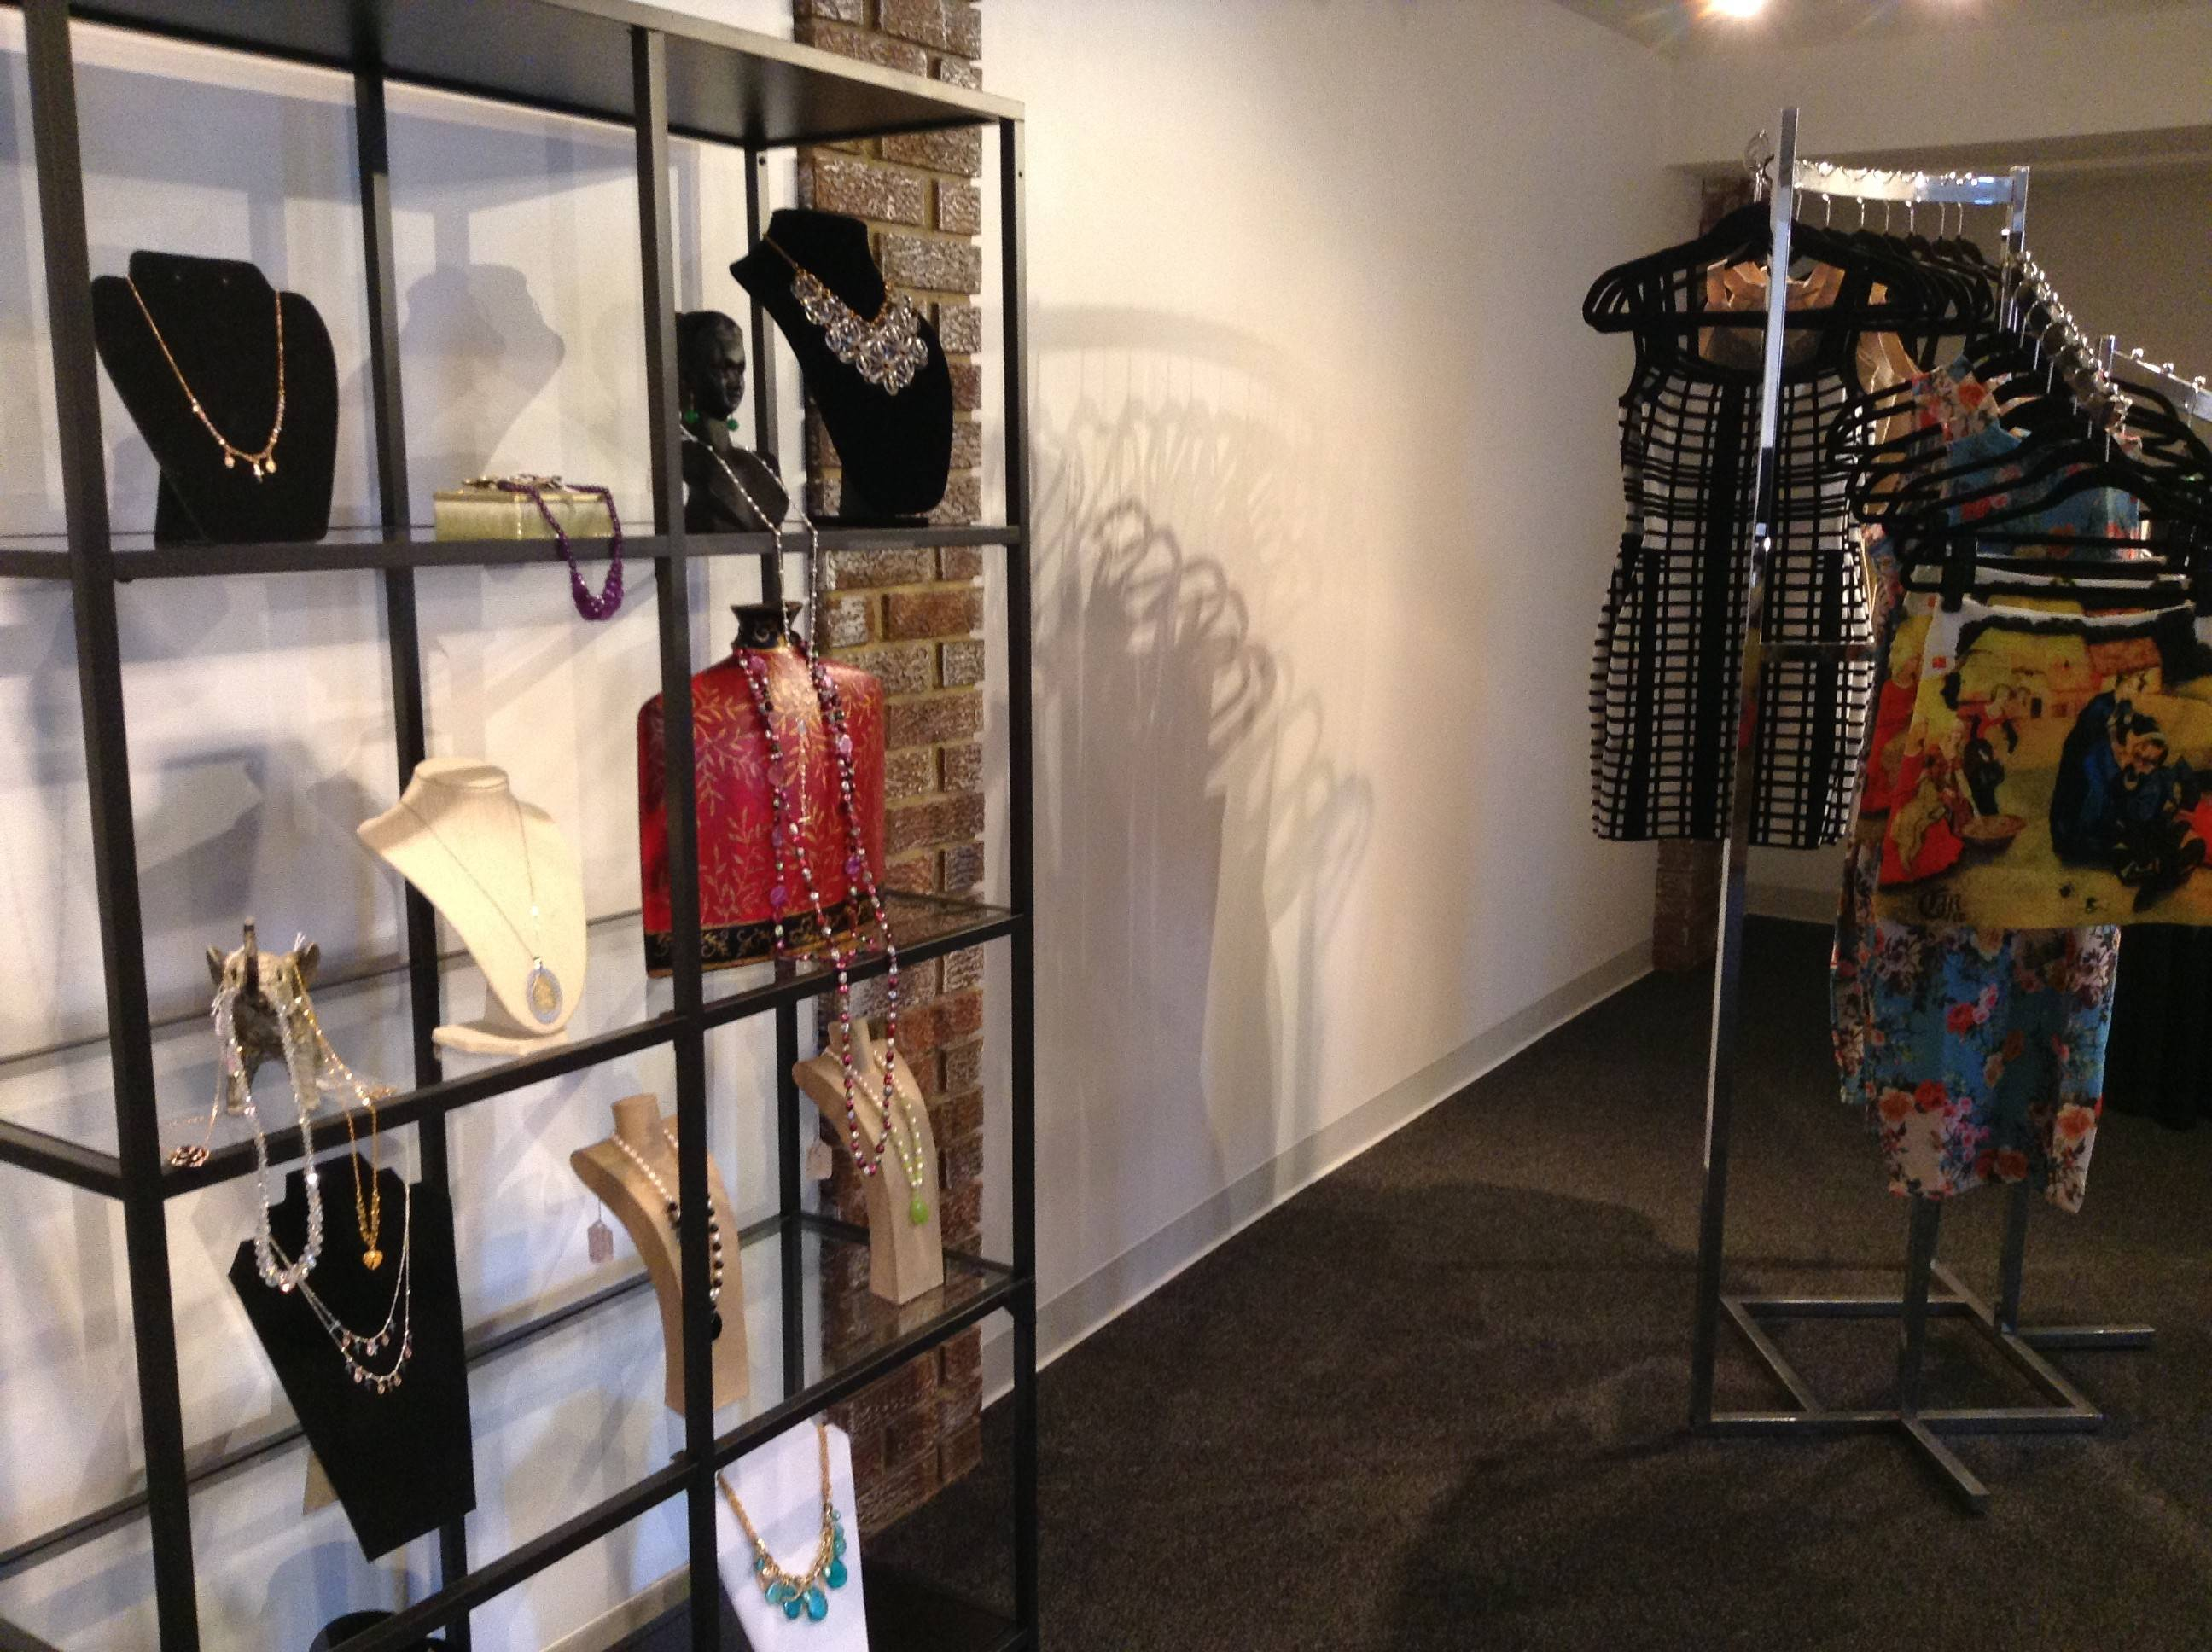 Glen Ellyn's new women's clothing and jewelry store, e & e aubé Designs, is located at 477 Forest Ave.